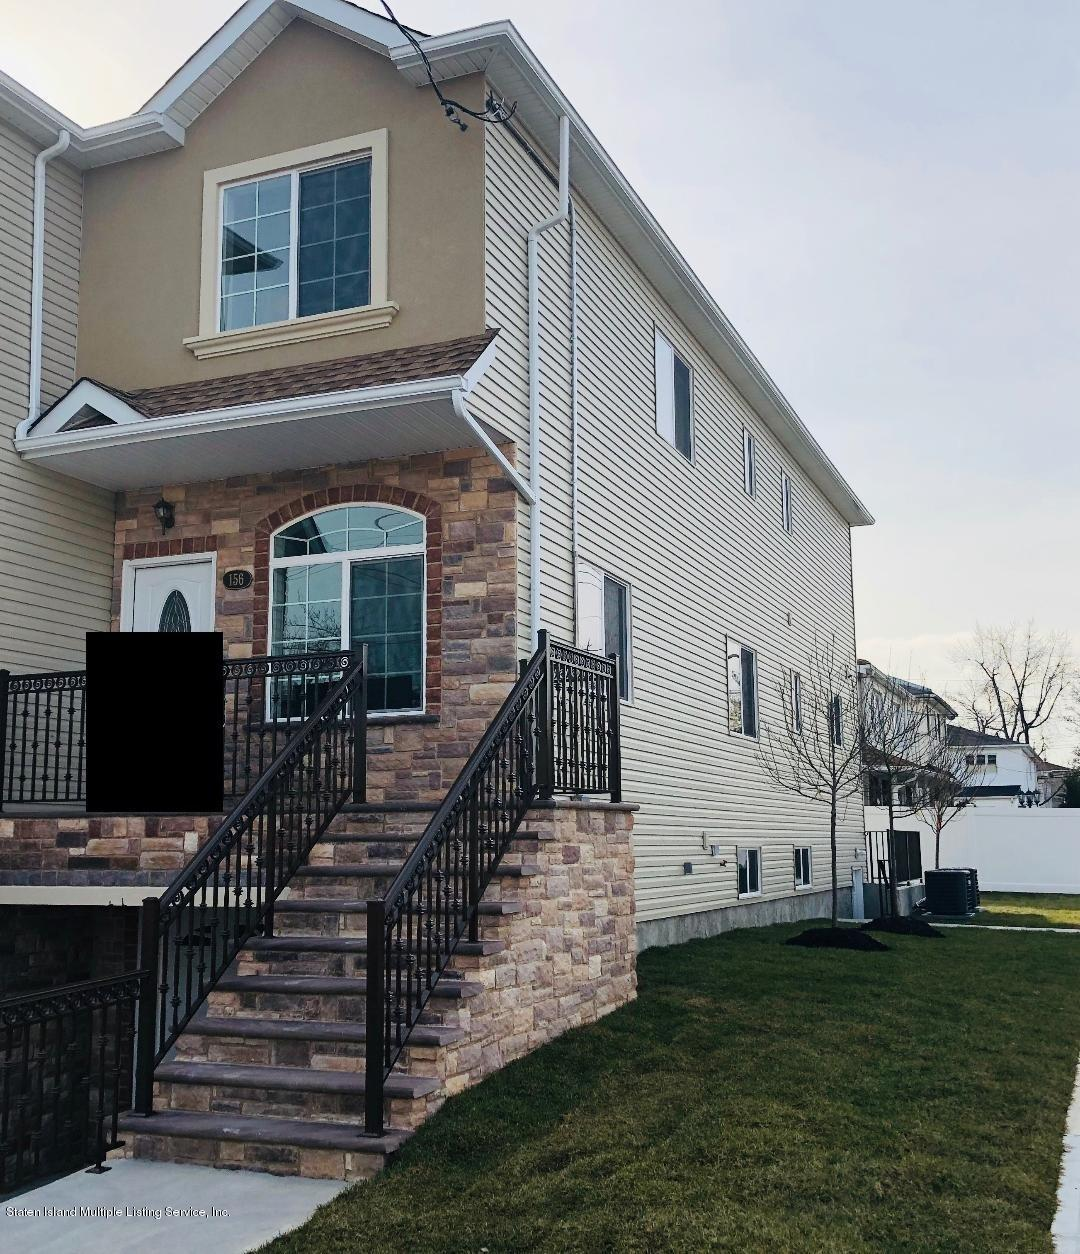 Single Family - Semi-Attached 156 Hopkins Avenue  Staten Island, NY 10306, MLS-1125111-25